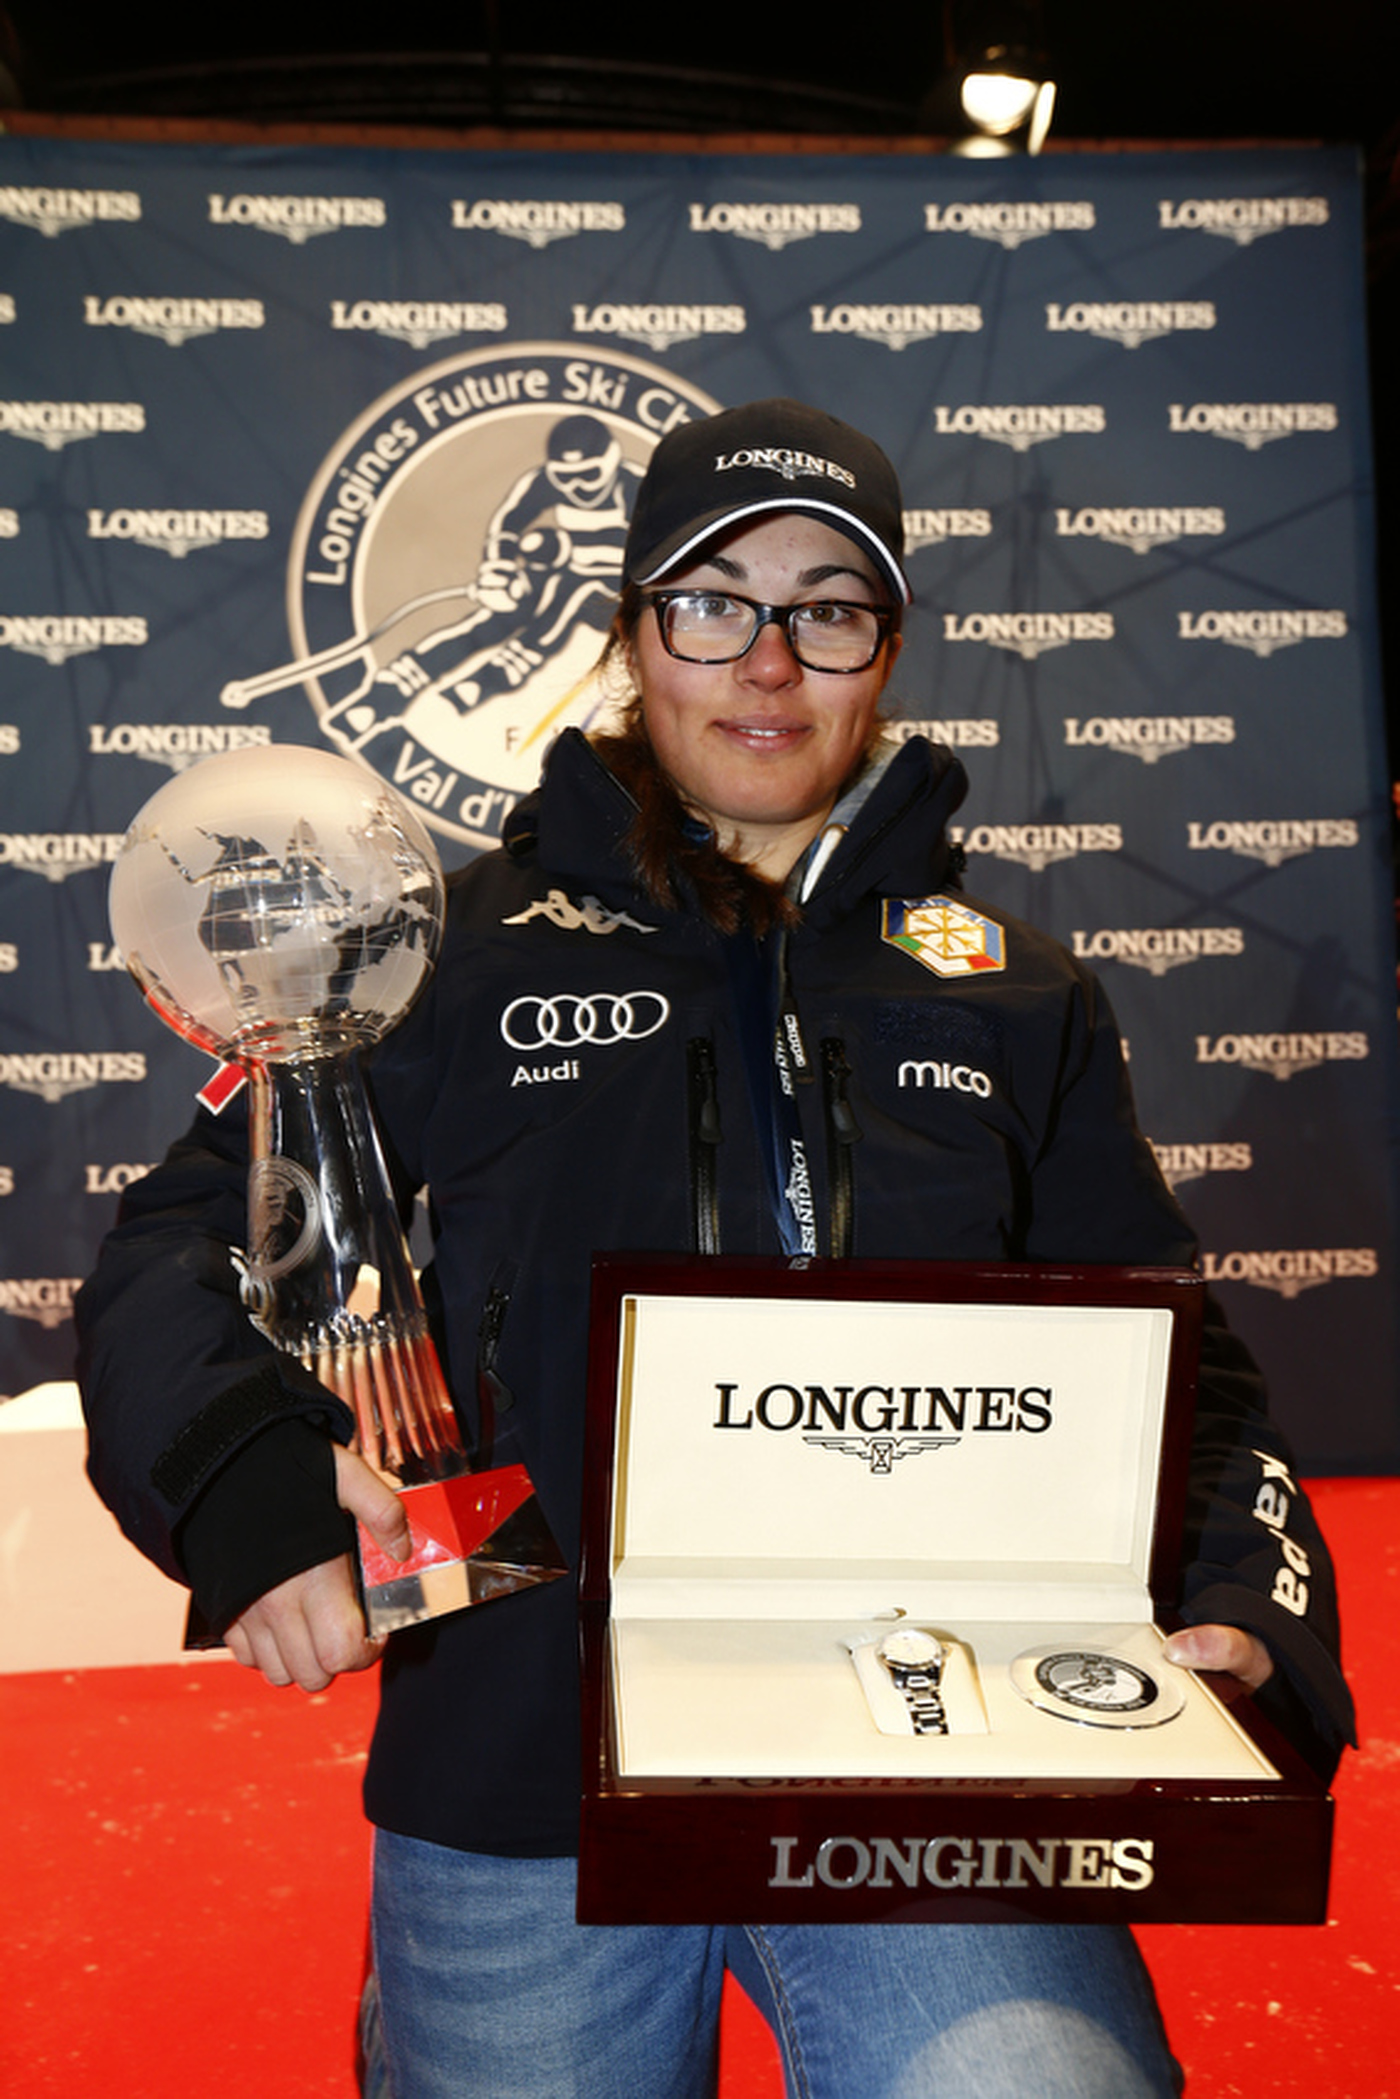 Longines Alpine Skiing Event: Second edition of the Longines Future Ski Champions – A successful 100% female competition in Val d'Isère 3